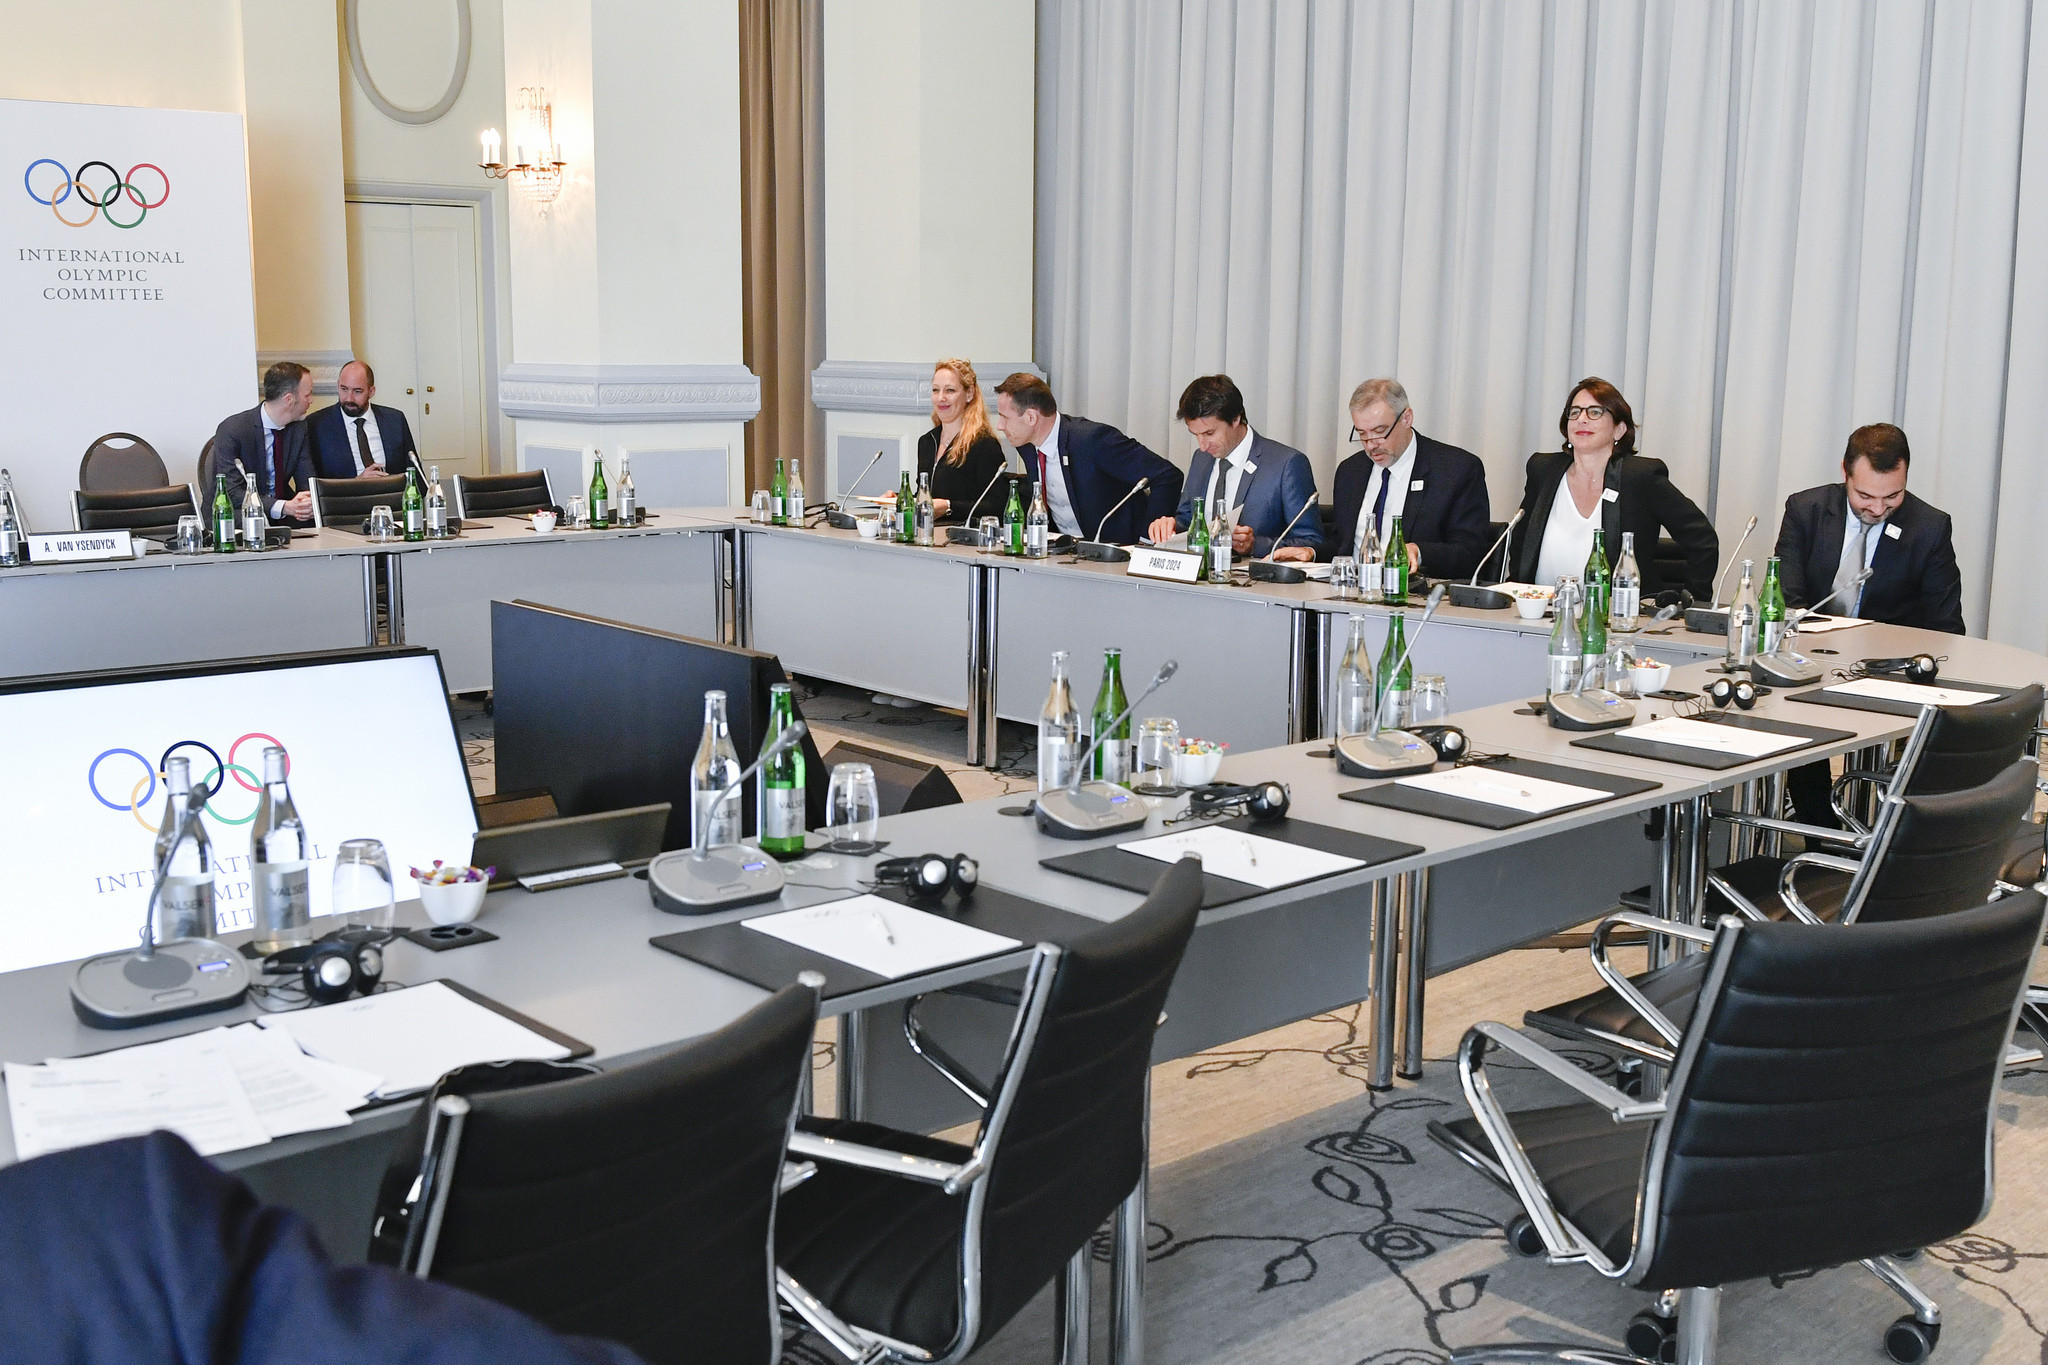 Paris 2024 presented to the IOC Executive Board during its latest meeting in Lausanne this week ©IOC